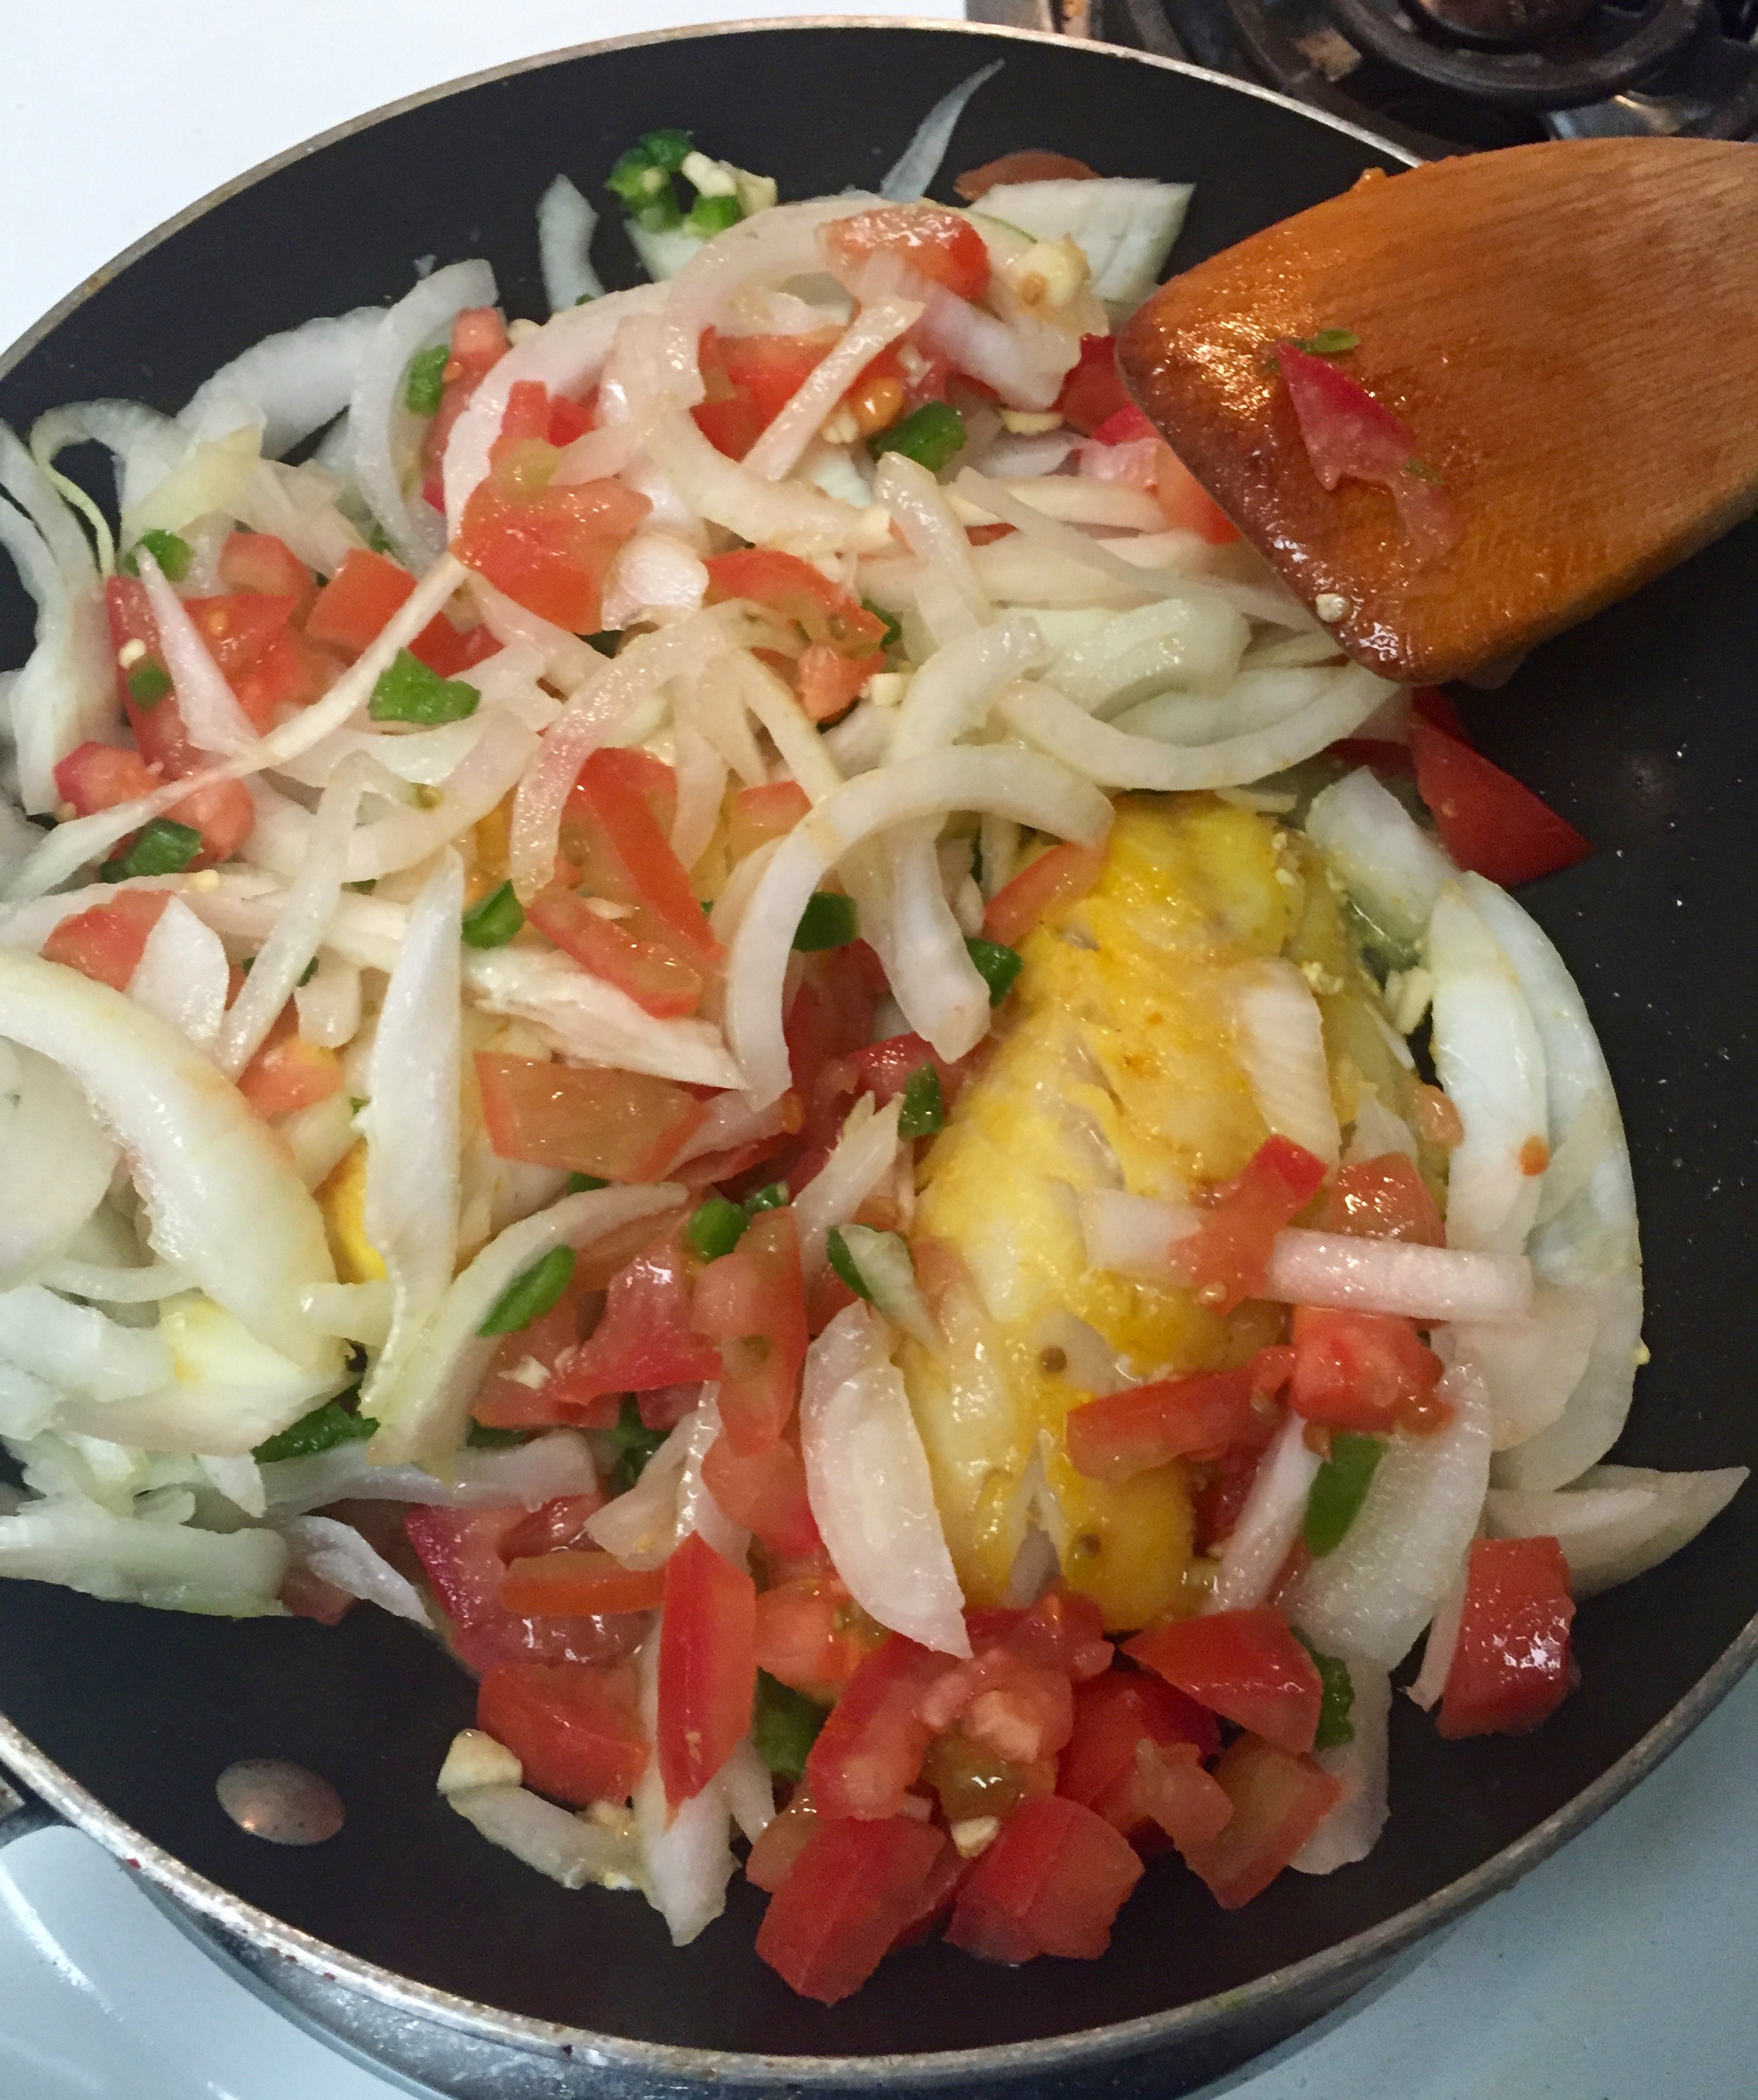 ... with Roasted Plantains and Tomato Jalepeño Salsa | A Girl & A Garnish